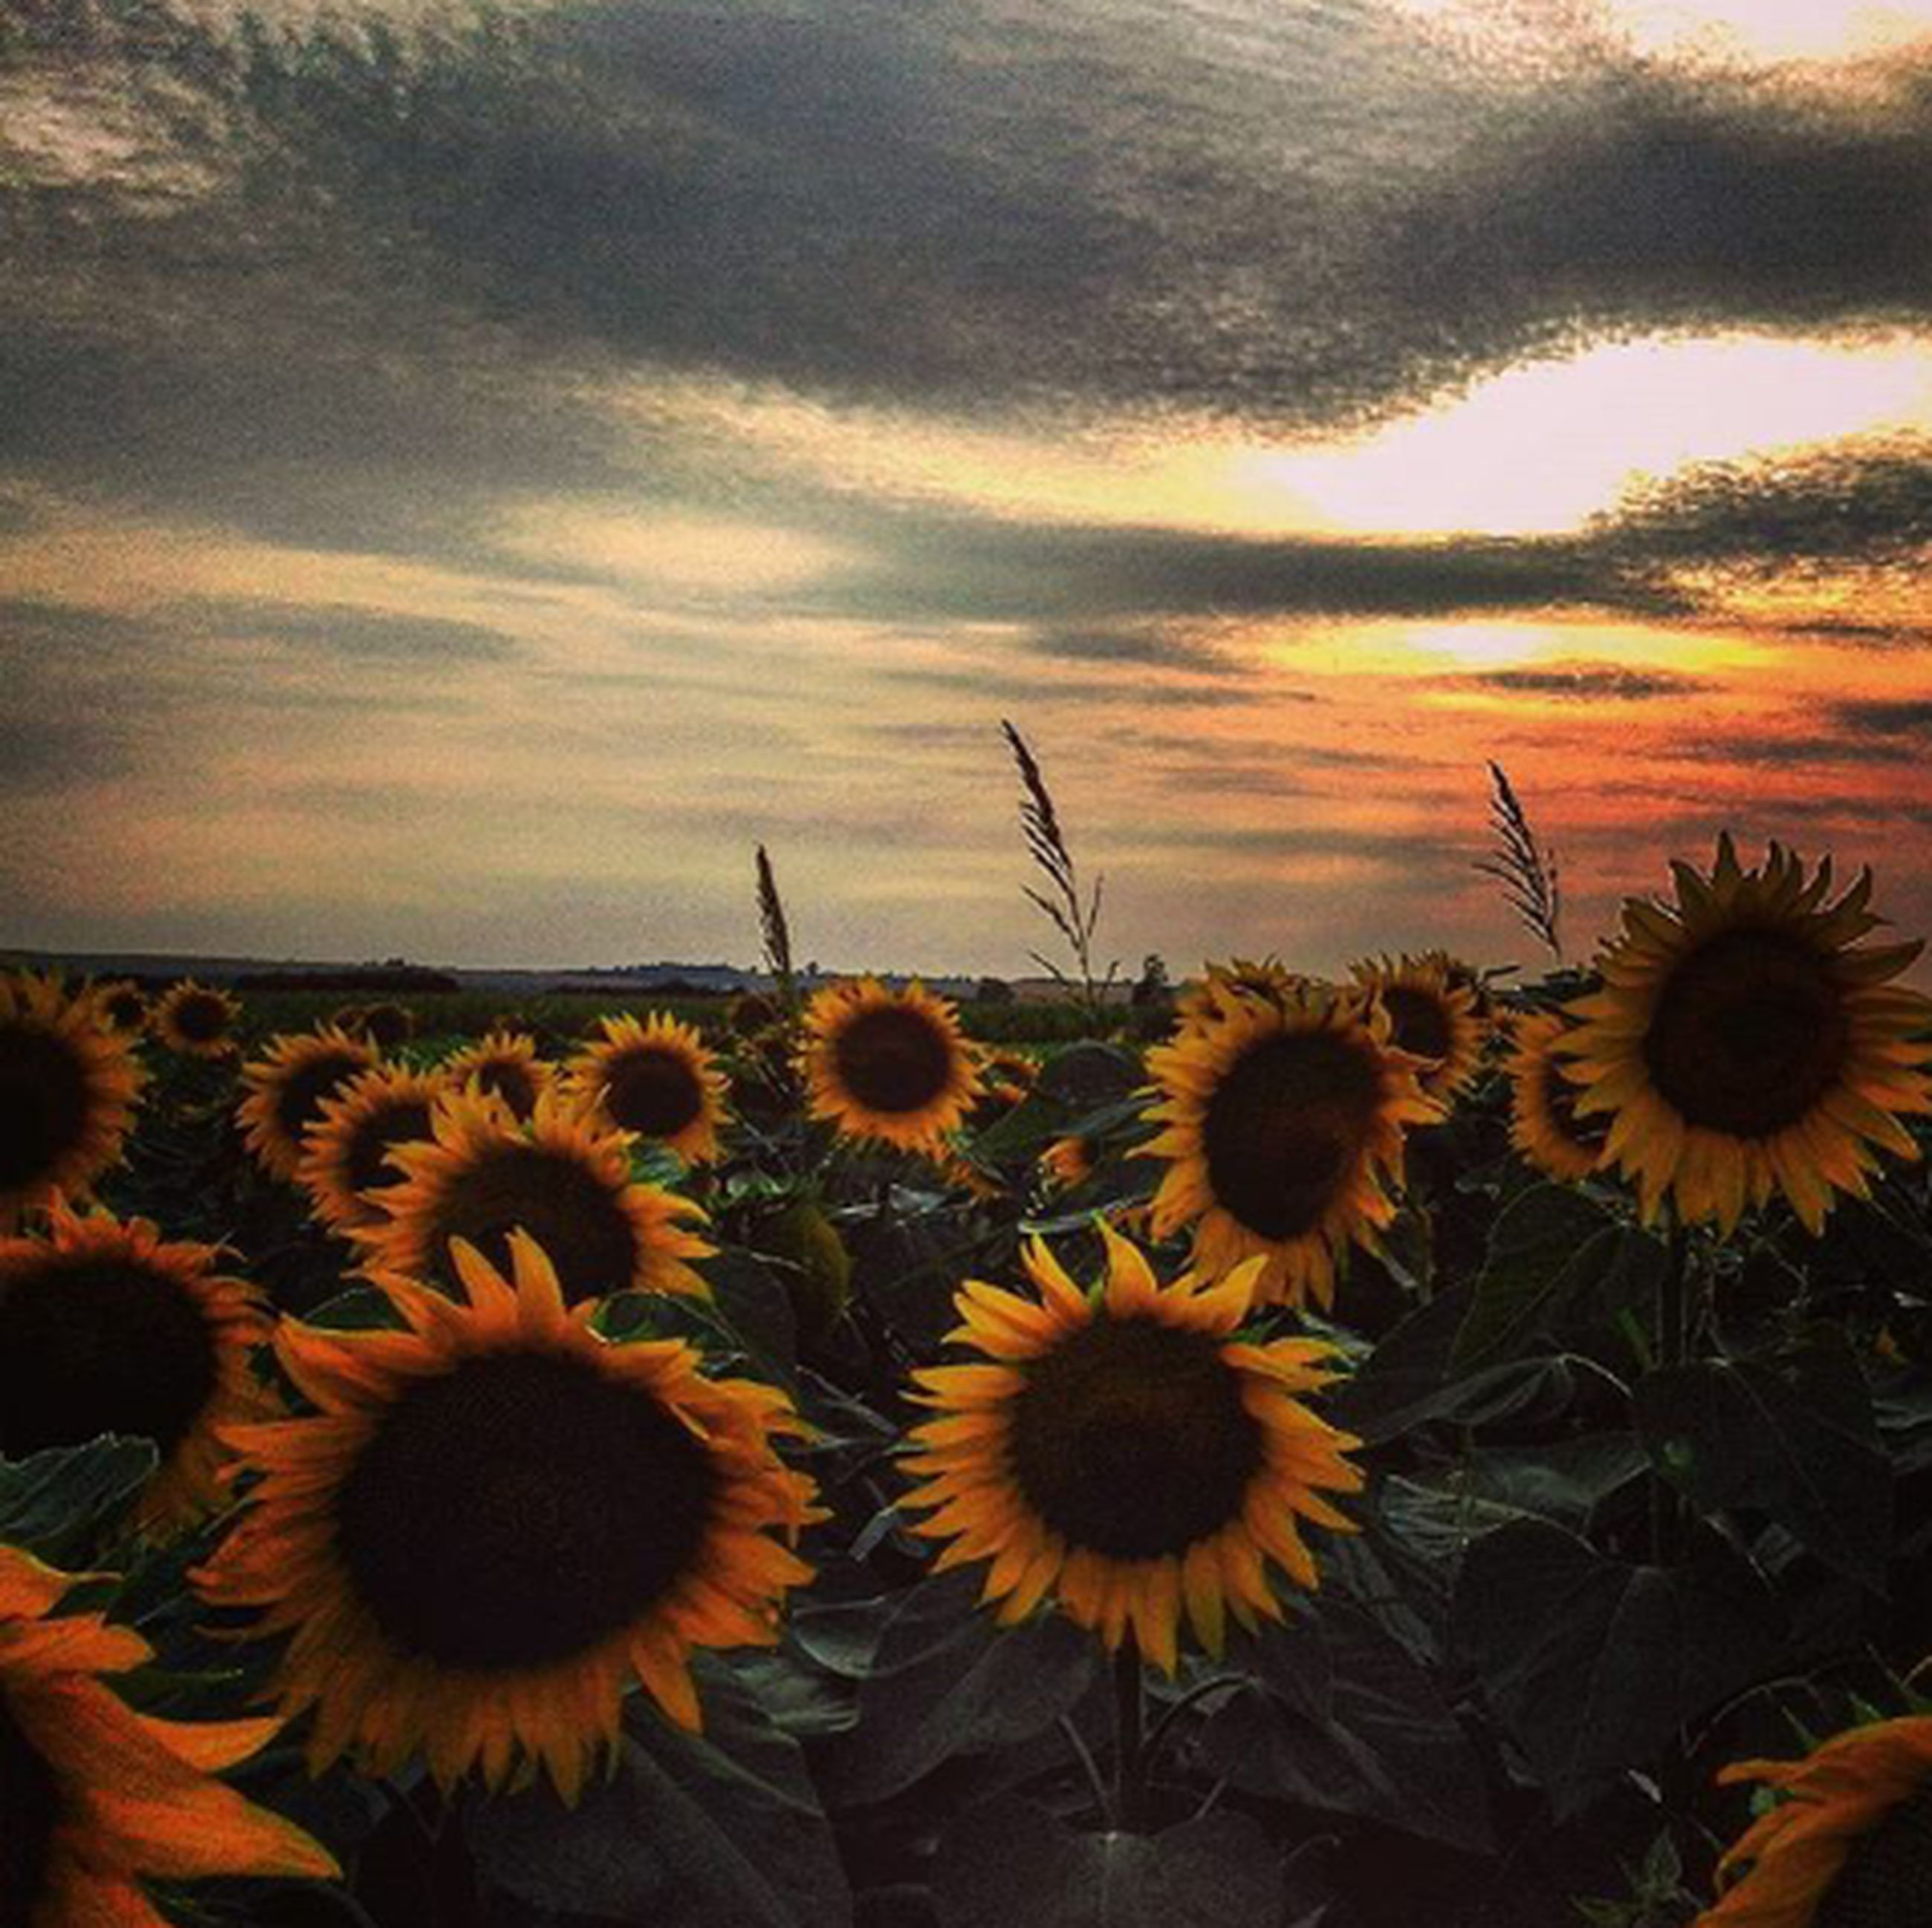 flower, sunflower, yellow, beauty in nature, growth, sky, nature, plant, field, fragility, freshness, cloud - sky, flower head, tranquility, abundance, rural scene, petal, blooming, scenics, outdoors, tranquil scene, cloudy, no people, landscape, cloud, day, close-up, growing, in bloom, idyllic, botany